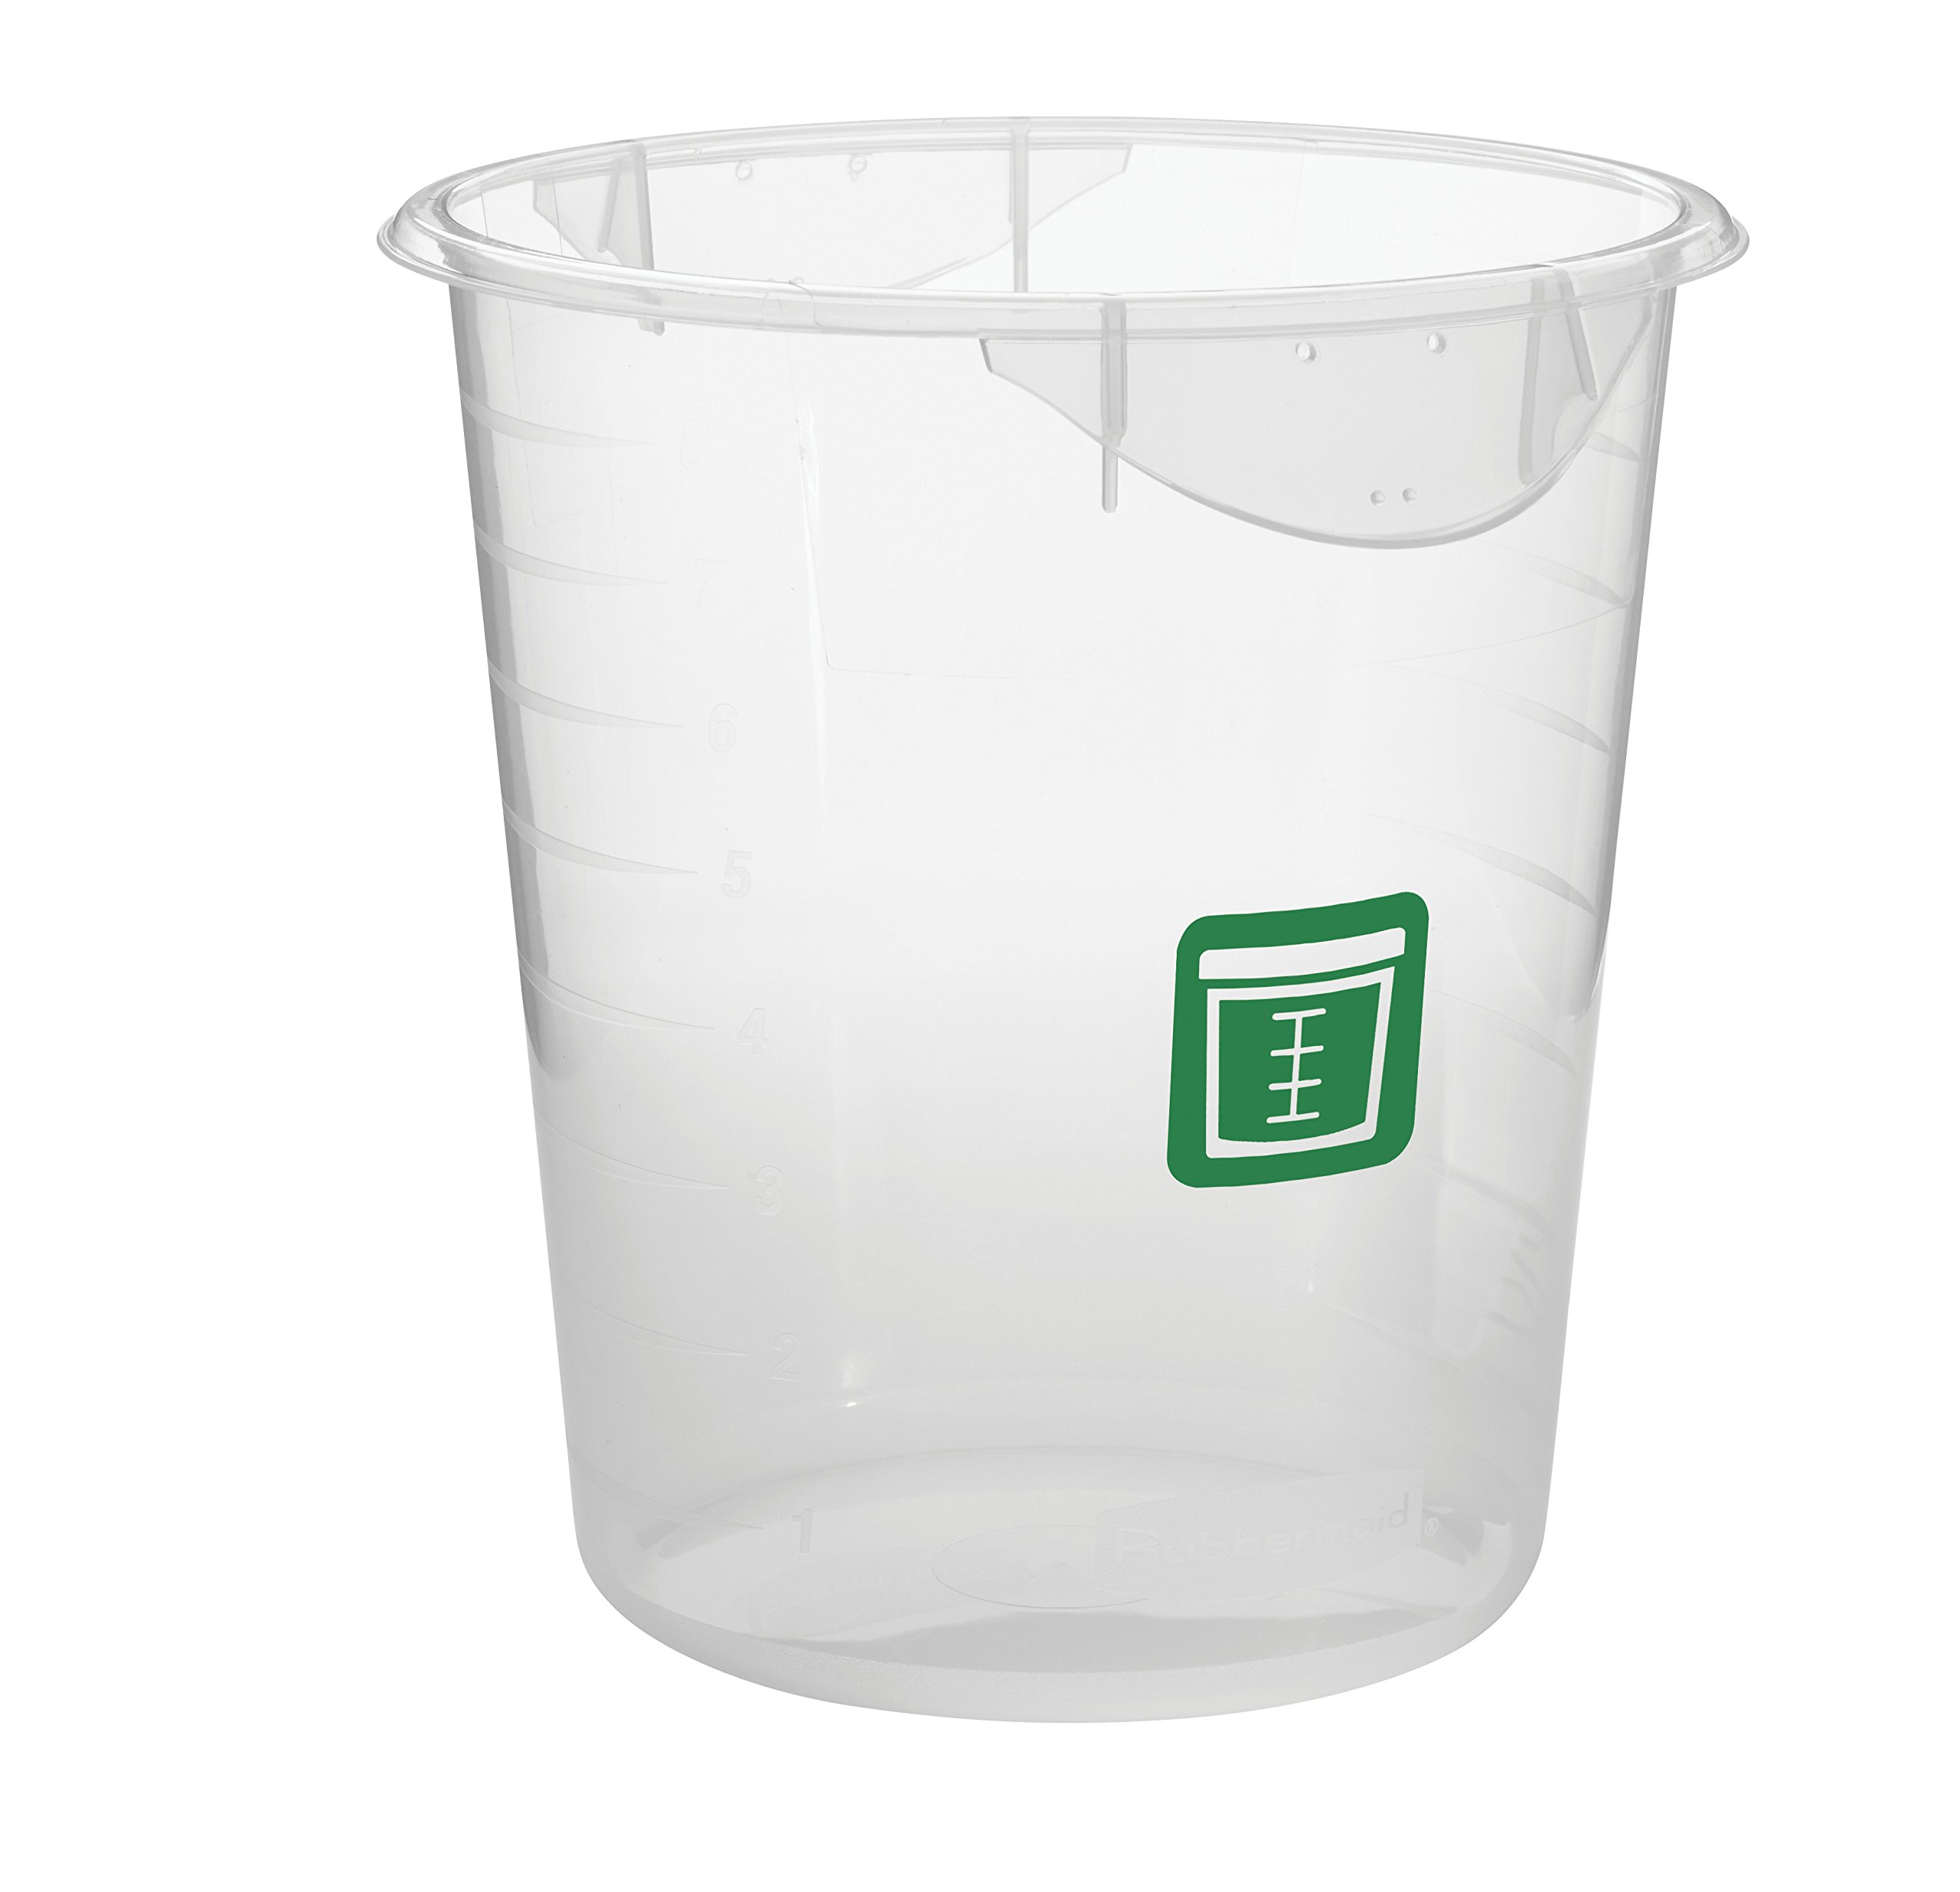 Rubbermaid Commercial Products 1980402 Round Plastic Food Storage Container, Green Label, 8 Quart, Clear